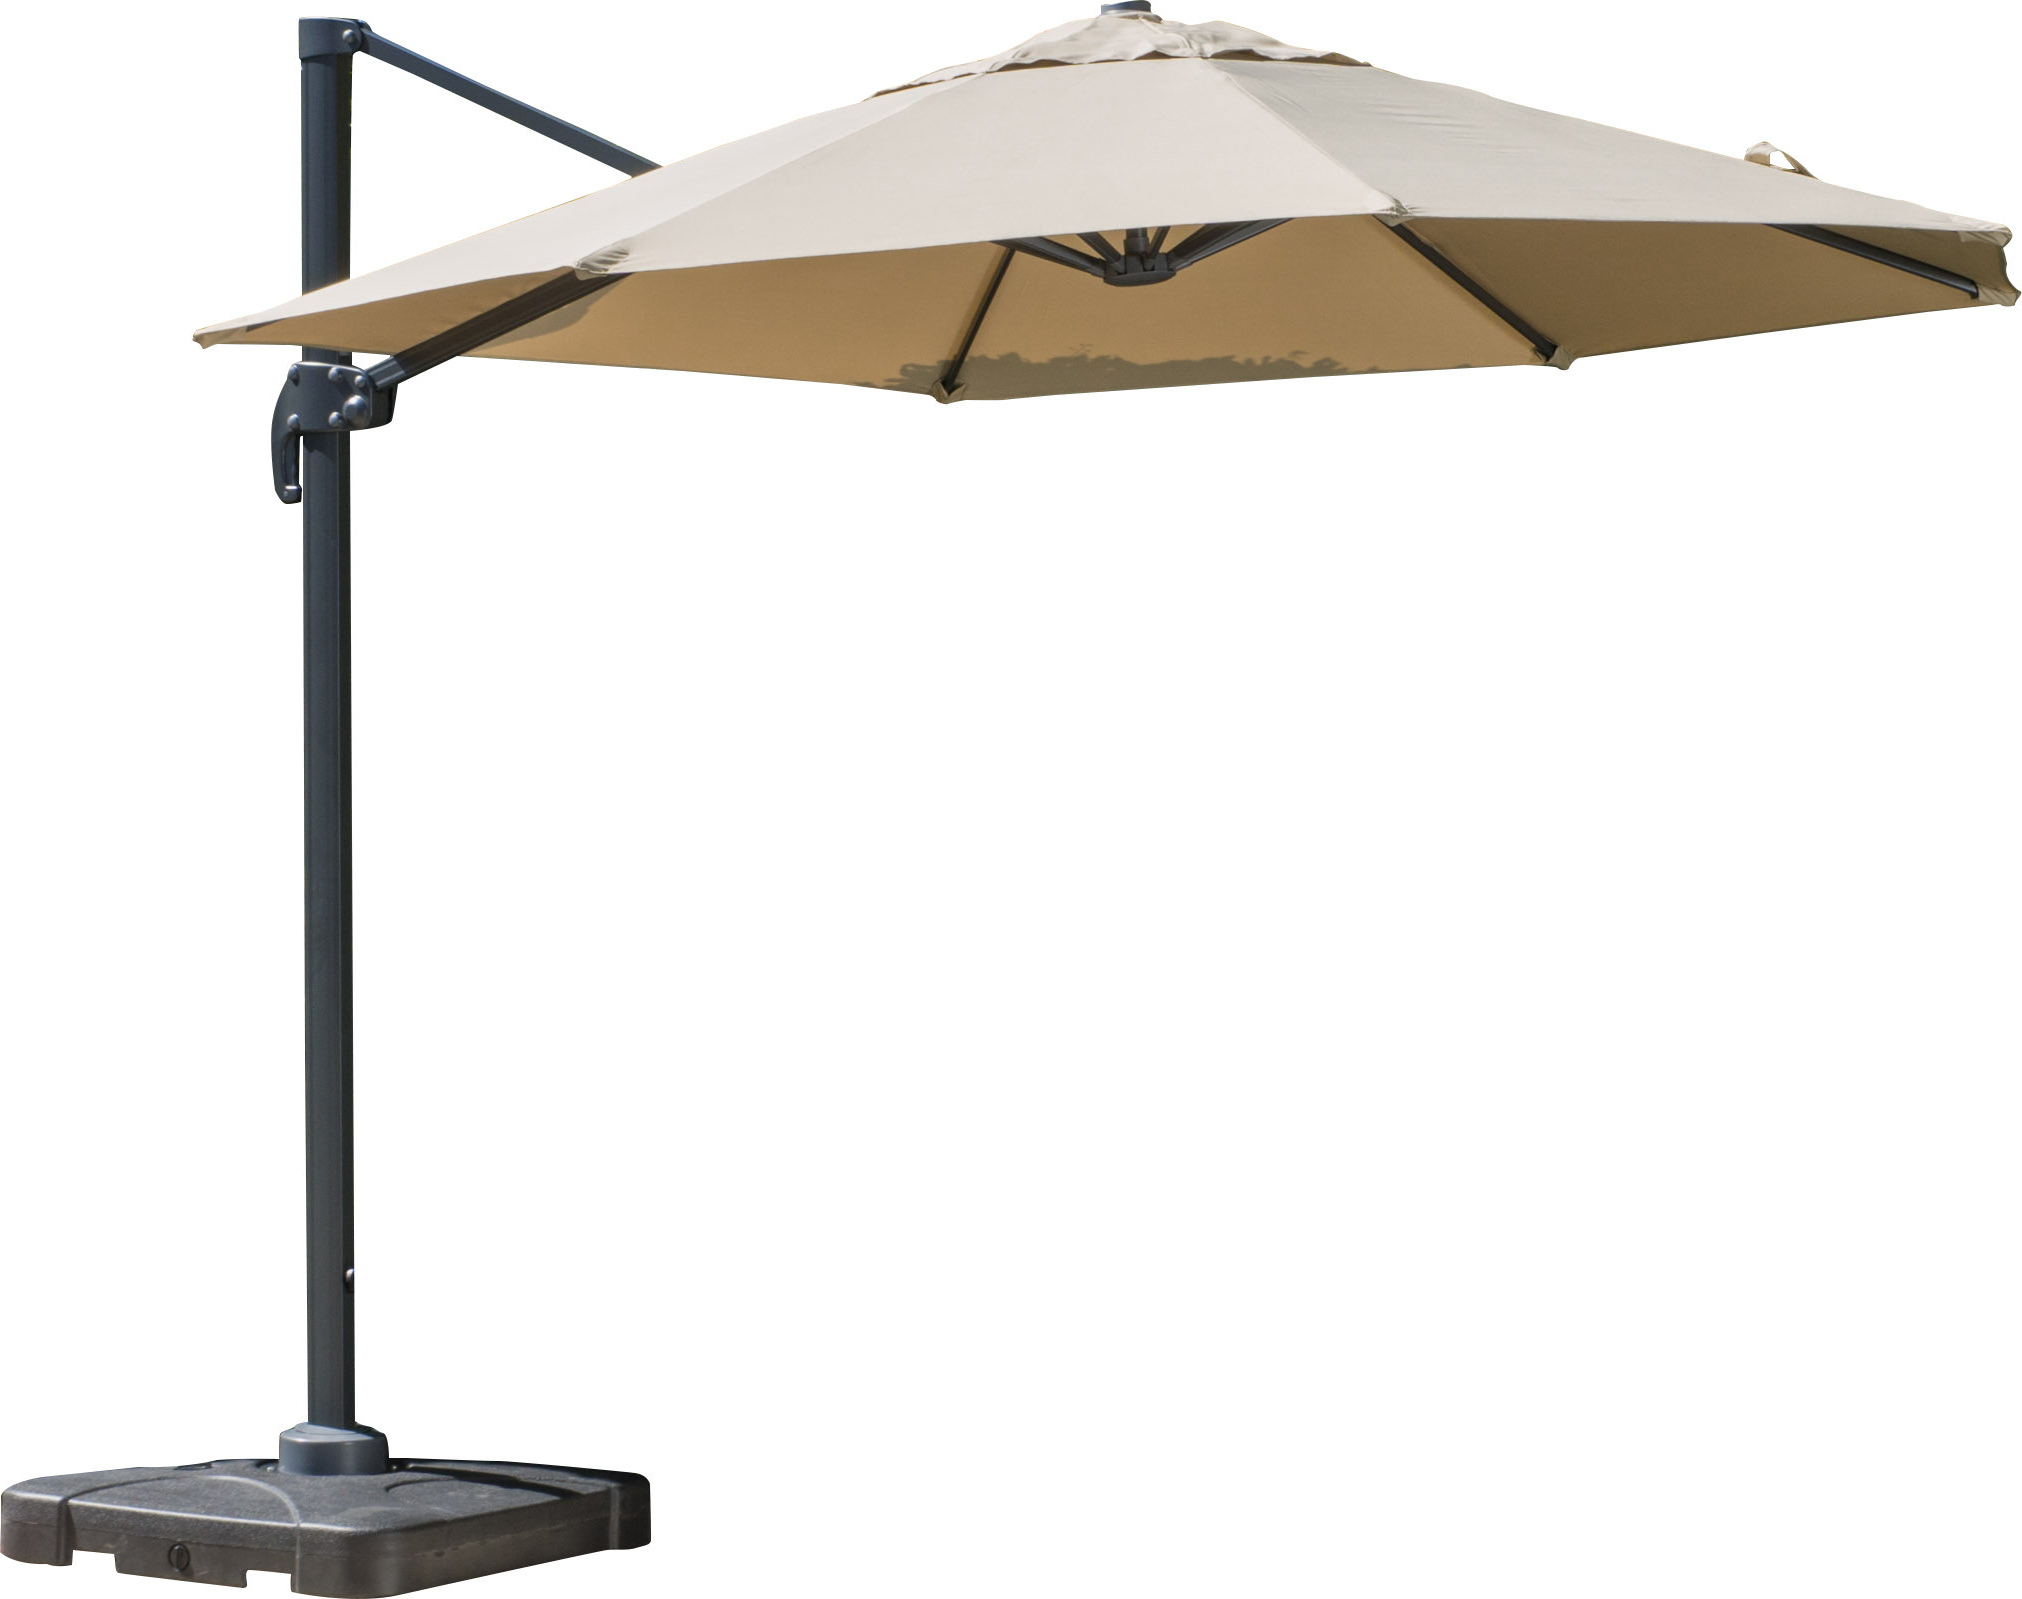 2020 Carlisle Cantilever Sunbrella Umbrellas Pertaining To Bellana Cantilever Umbrella (Gallery 11 of 20)